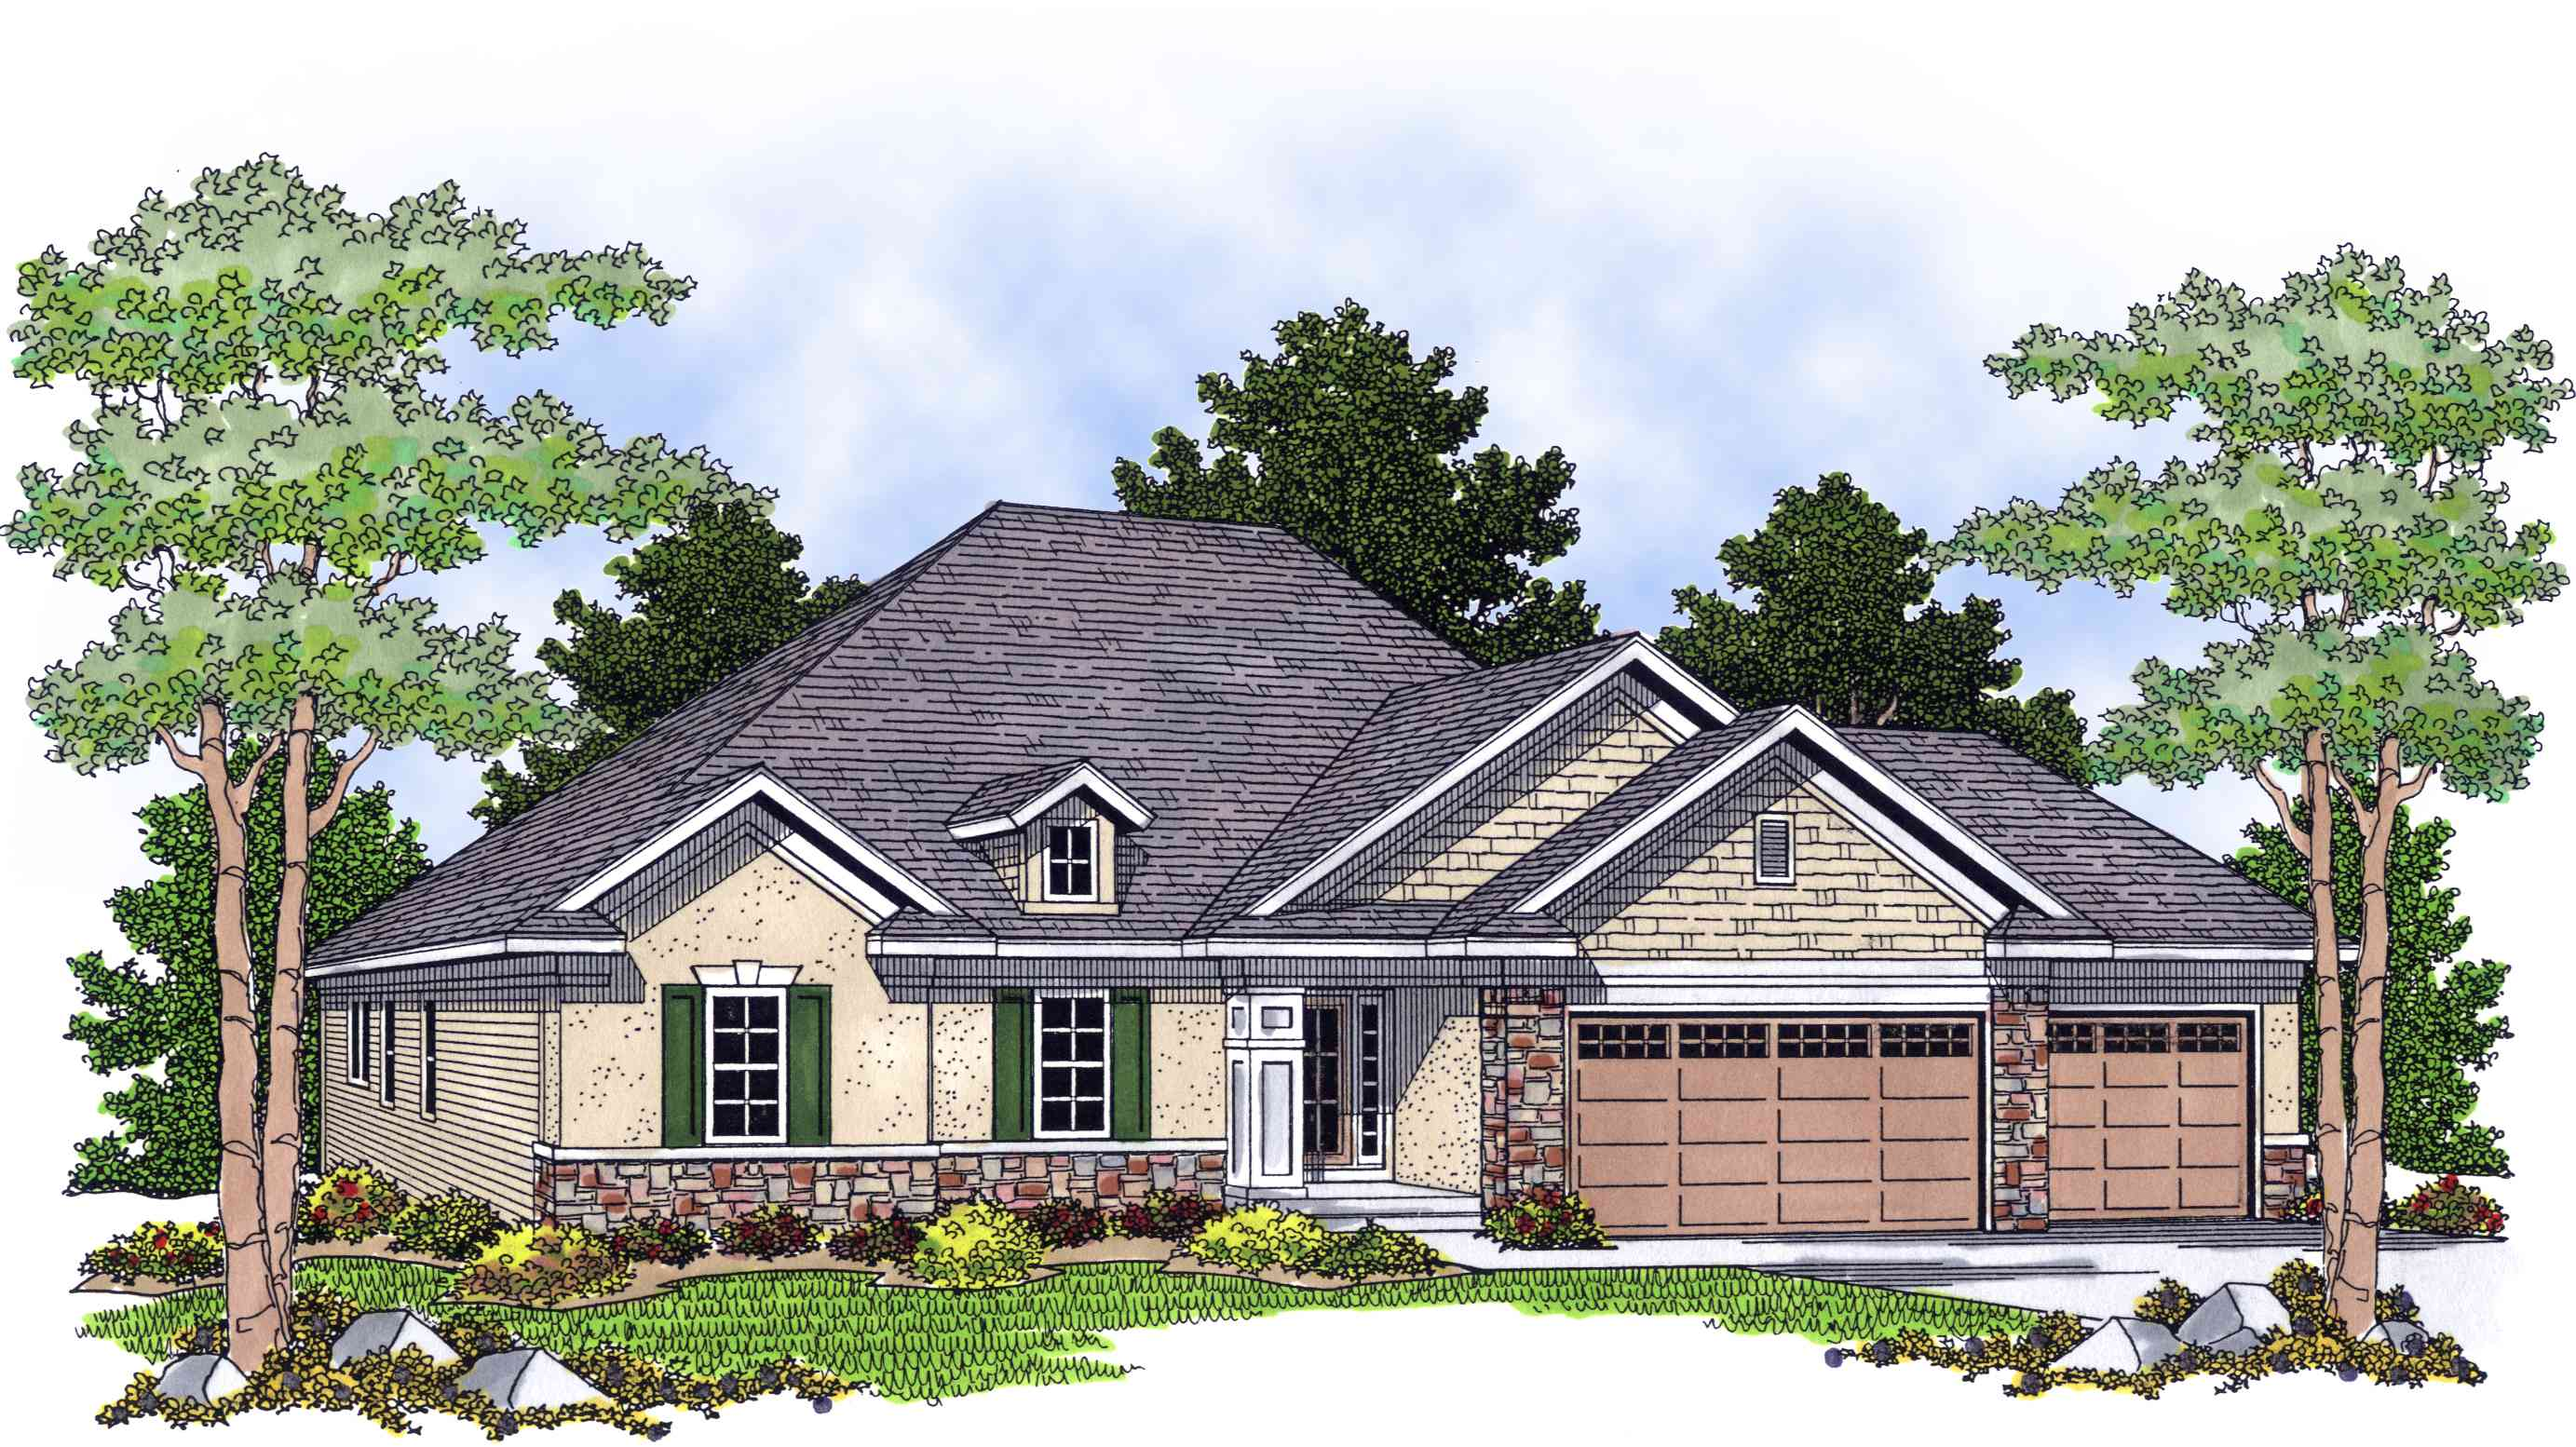 Ranch home with great rear views 8990ah 1st floor Rear view home plans